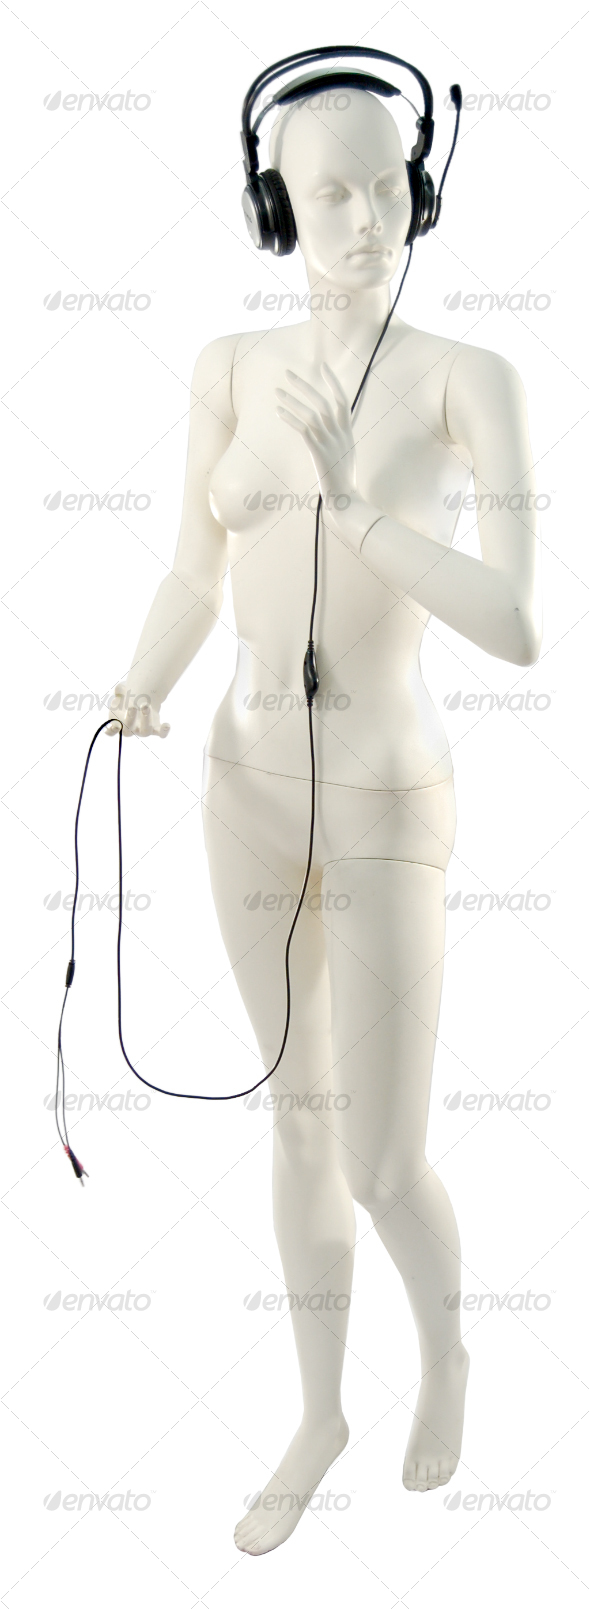 Mannequin with Headphones - Clothes &amp; Accessories Isolated Objects